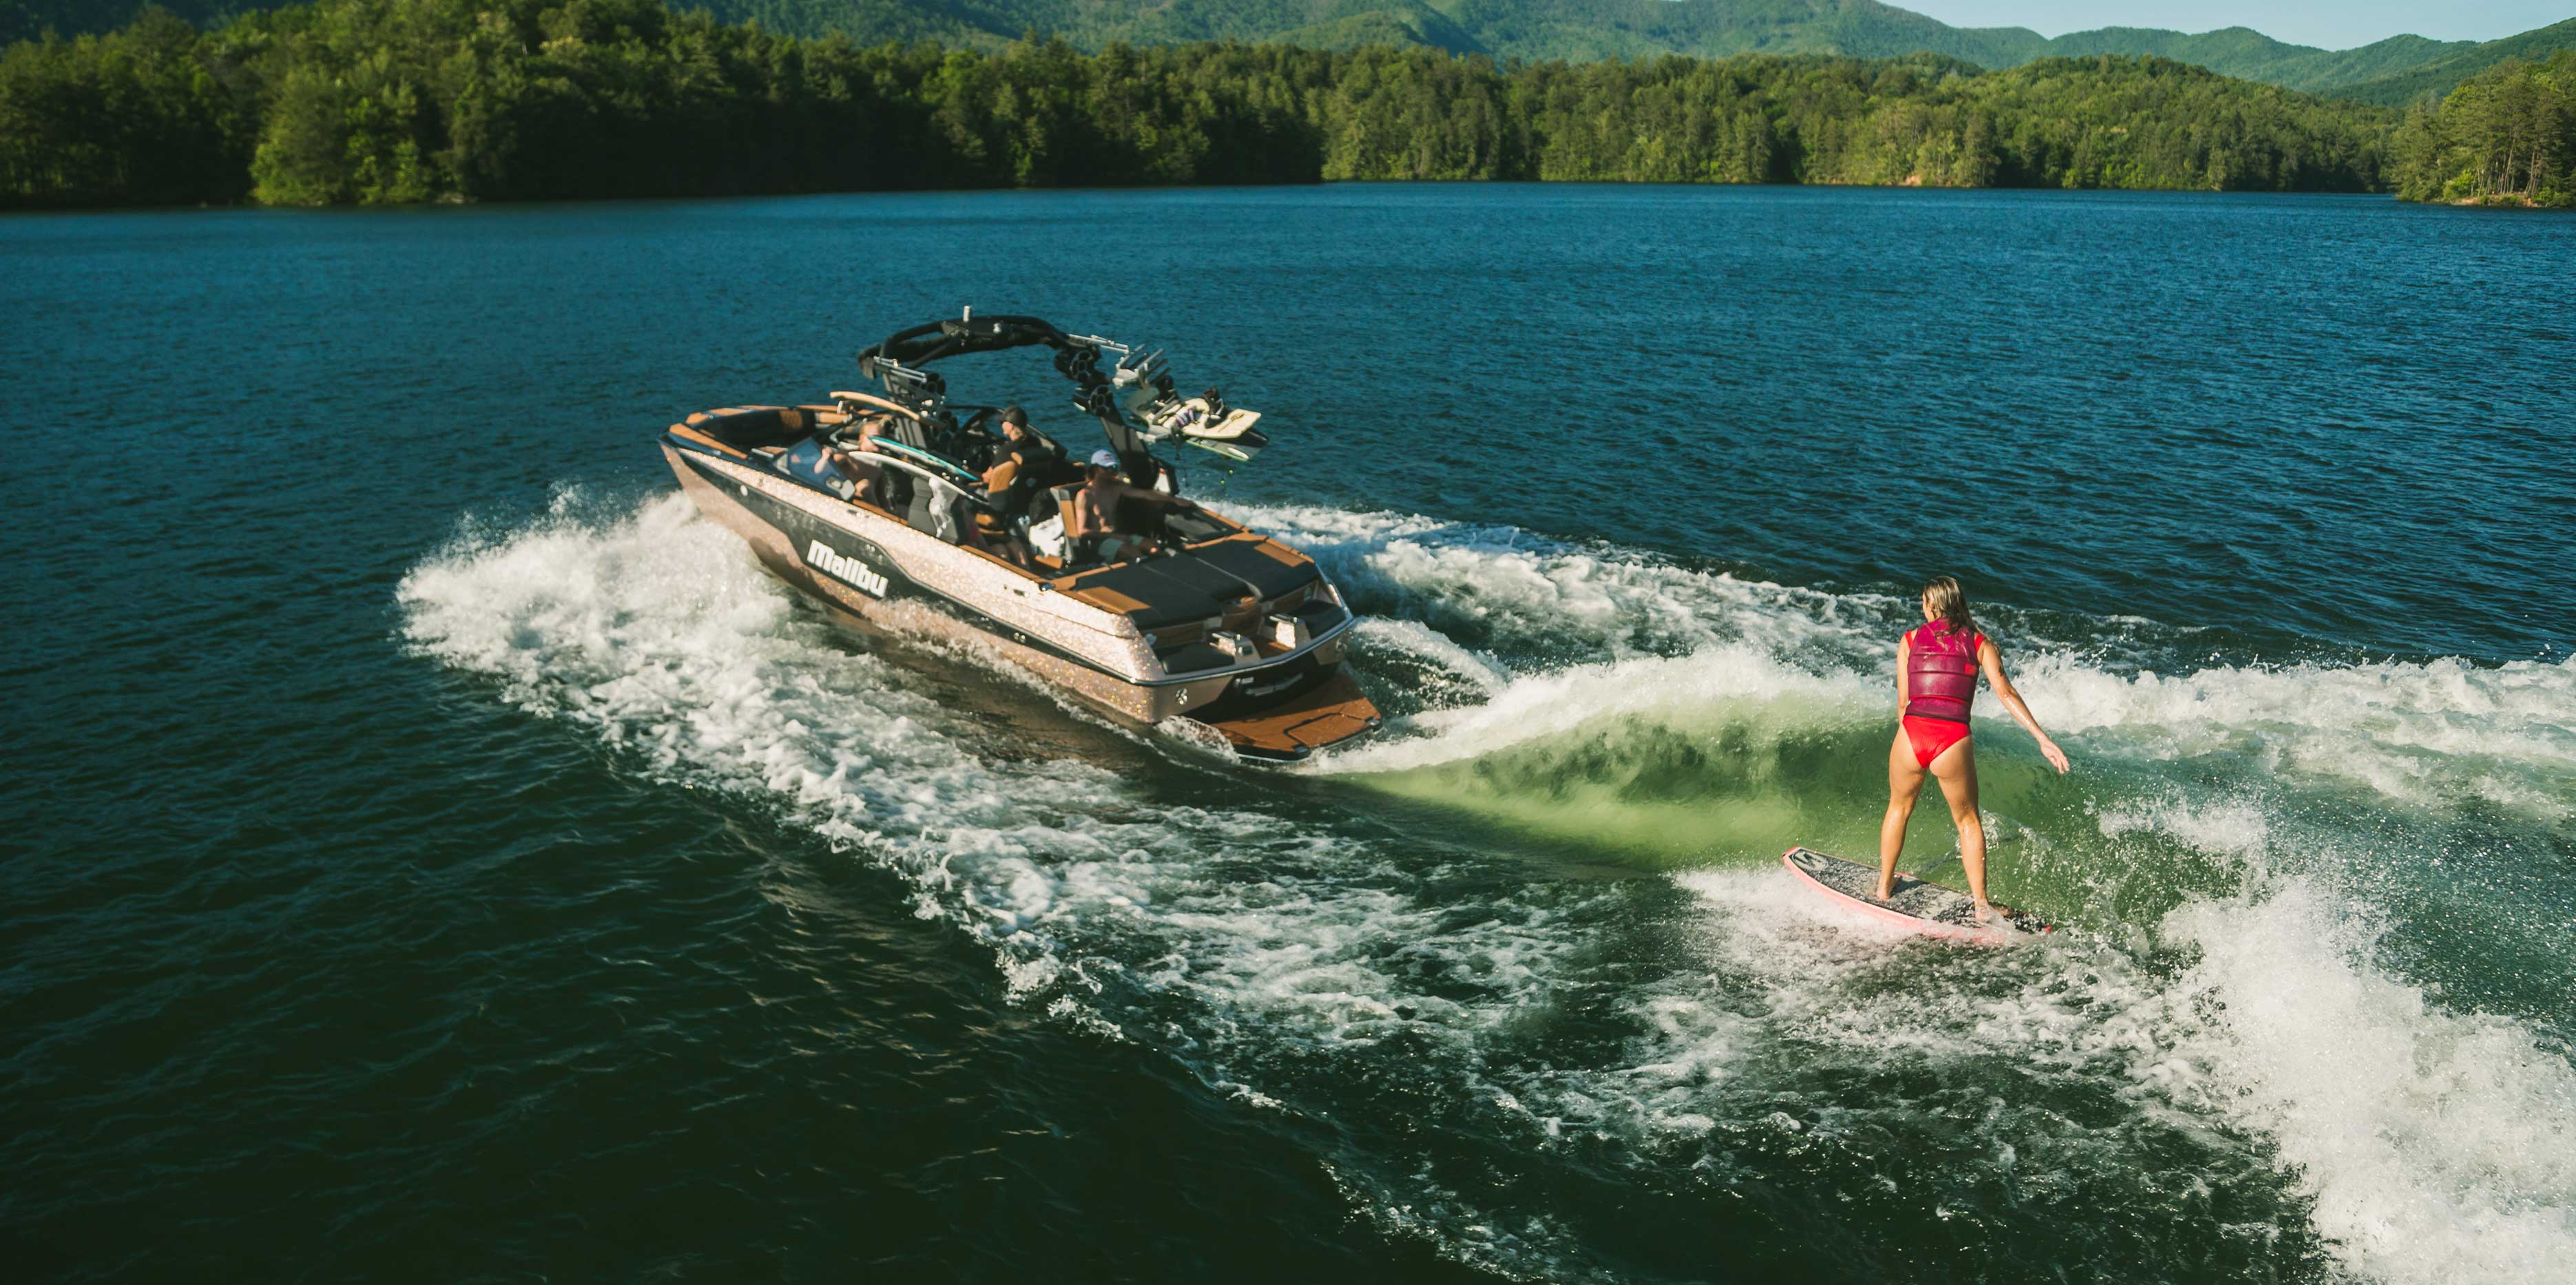 What Makes a Great Wakesurf Boat?